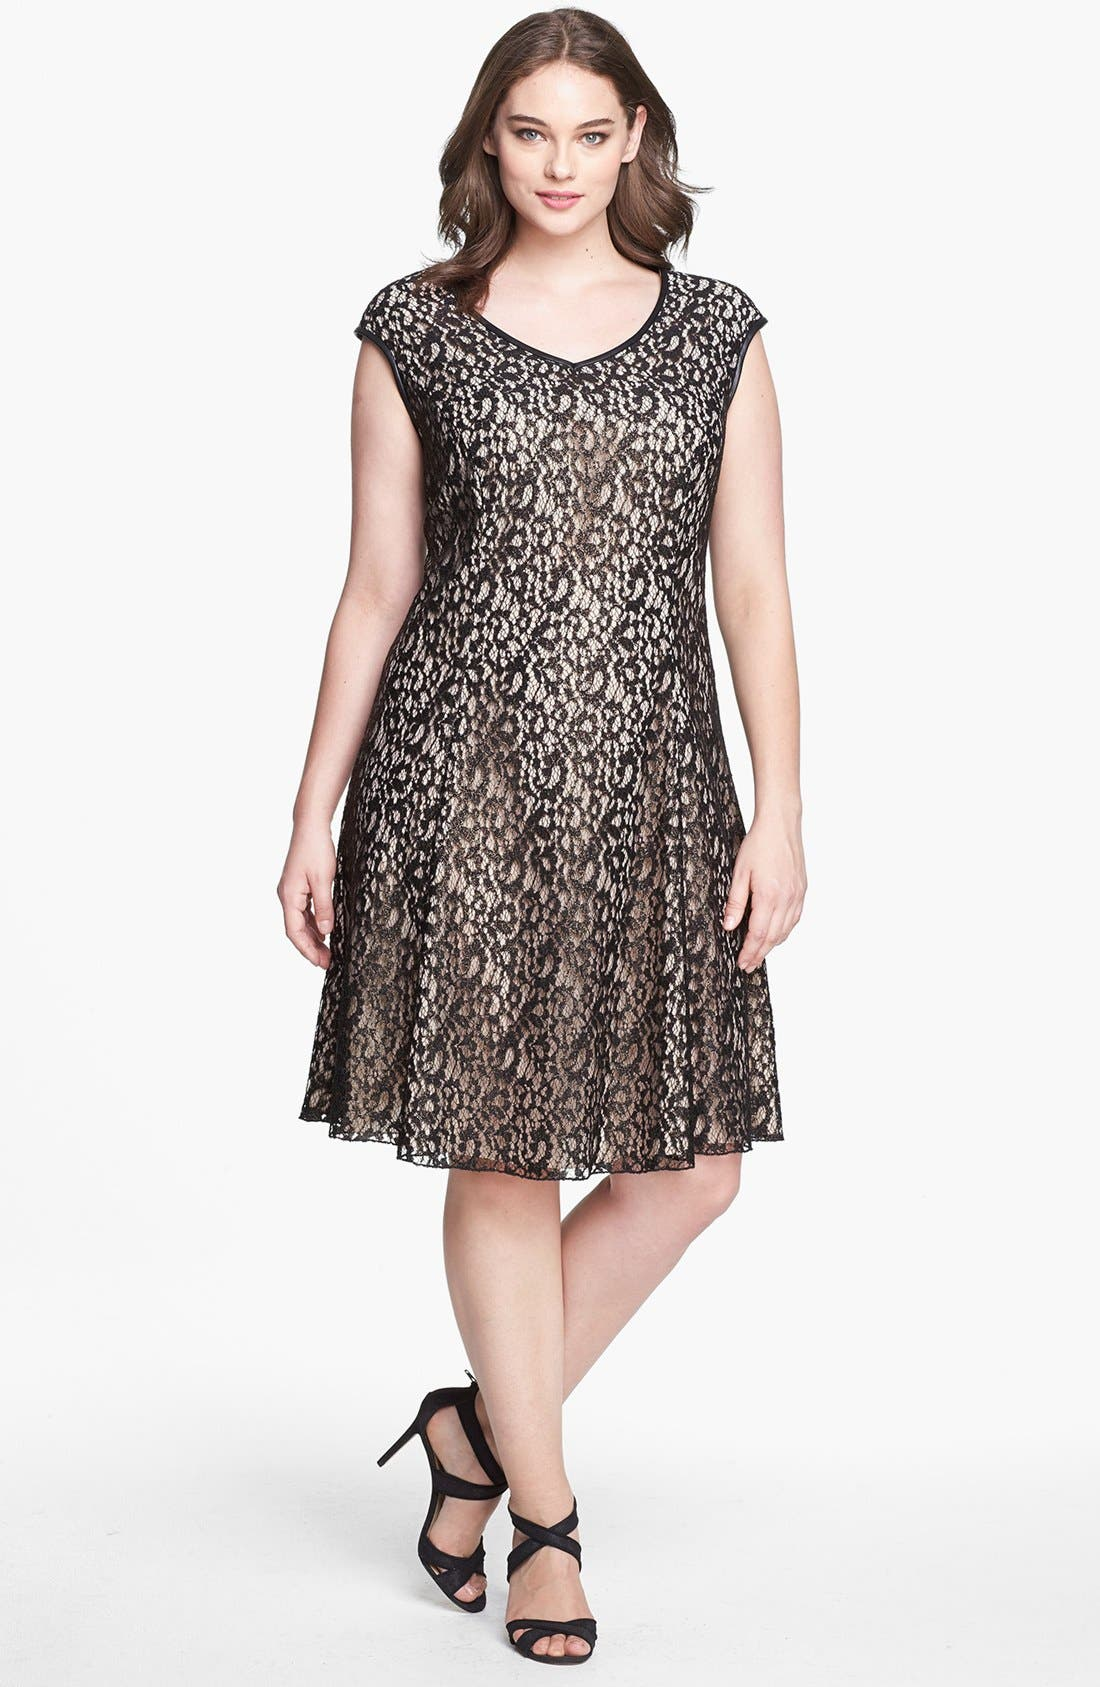 Alternate Image 1 Selected - ABS by Allen Schwartz Foiled Lace Fit & Flare Dress (Plus Size)